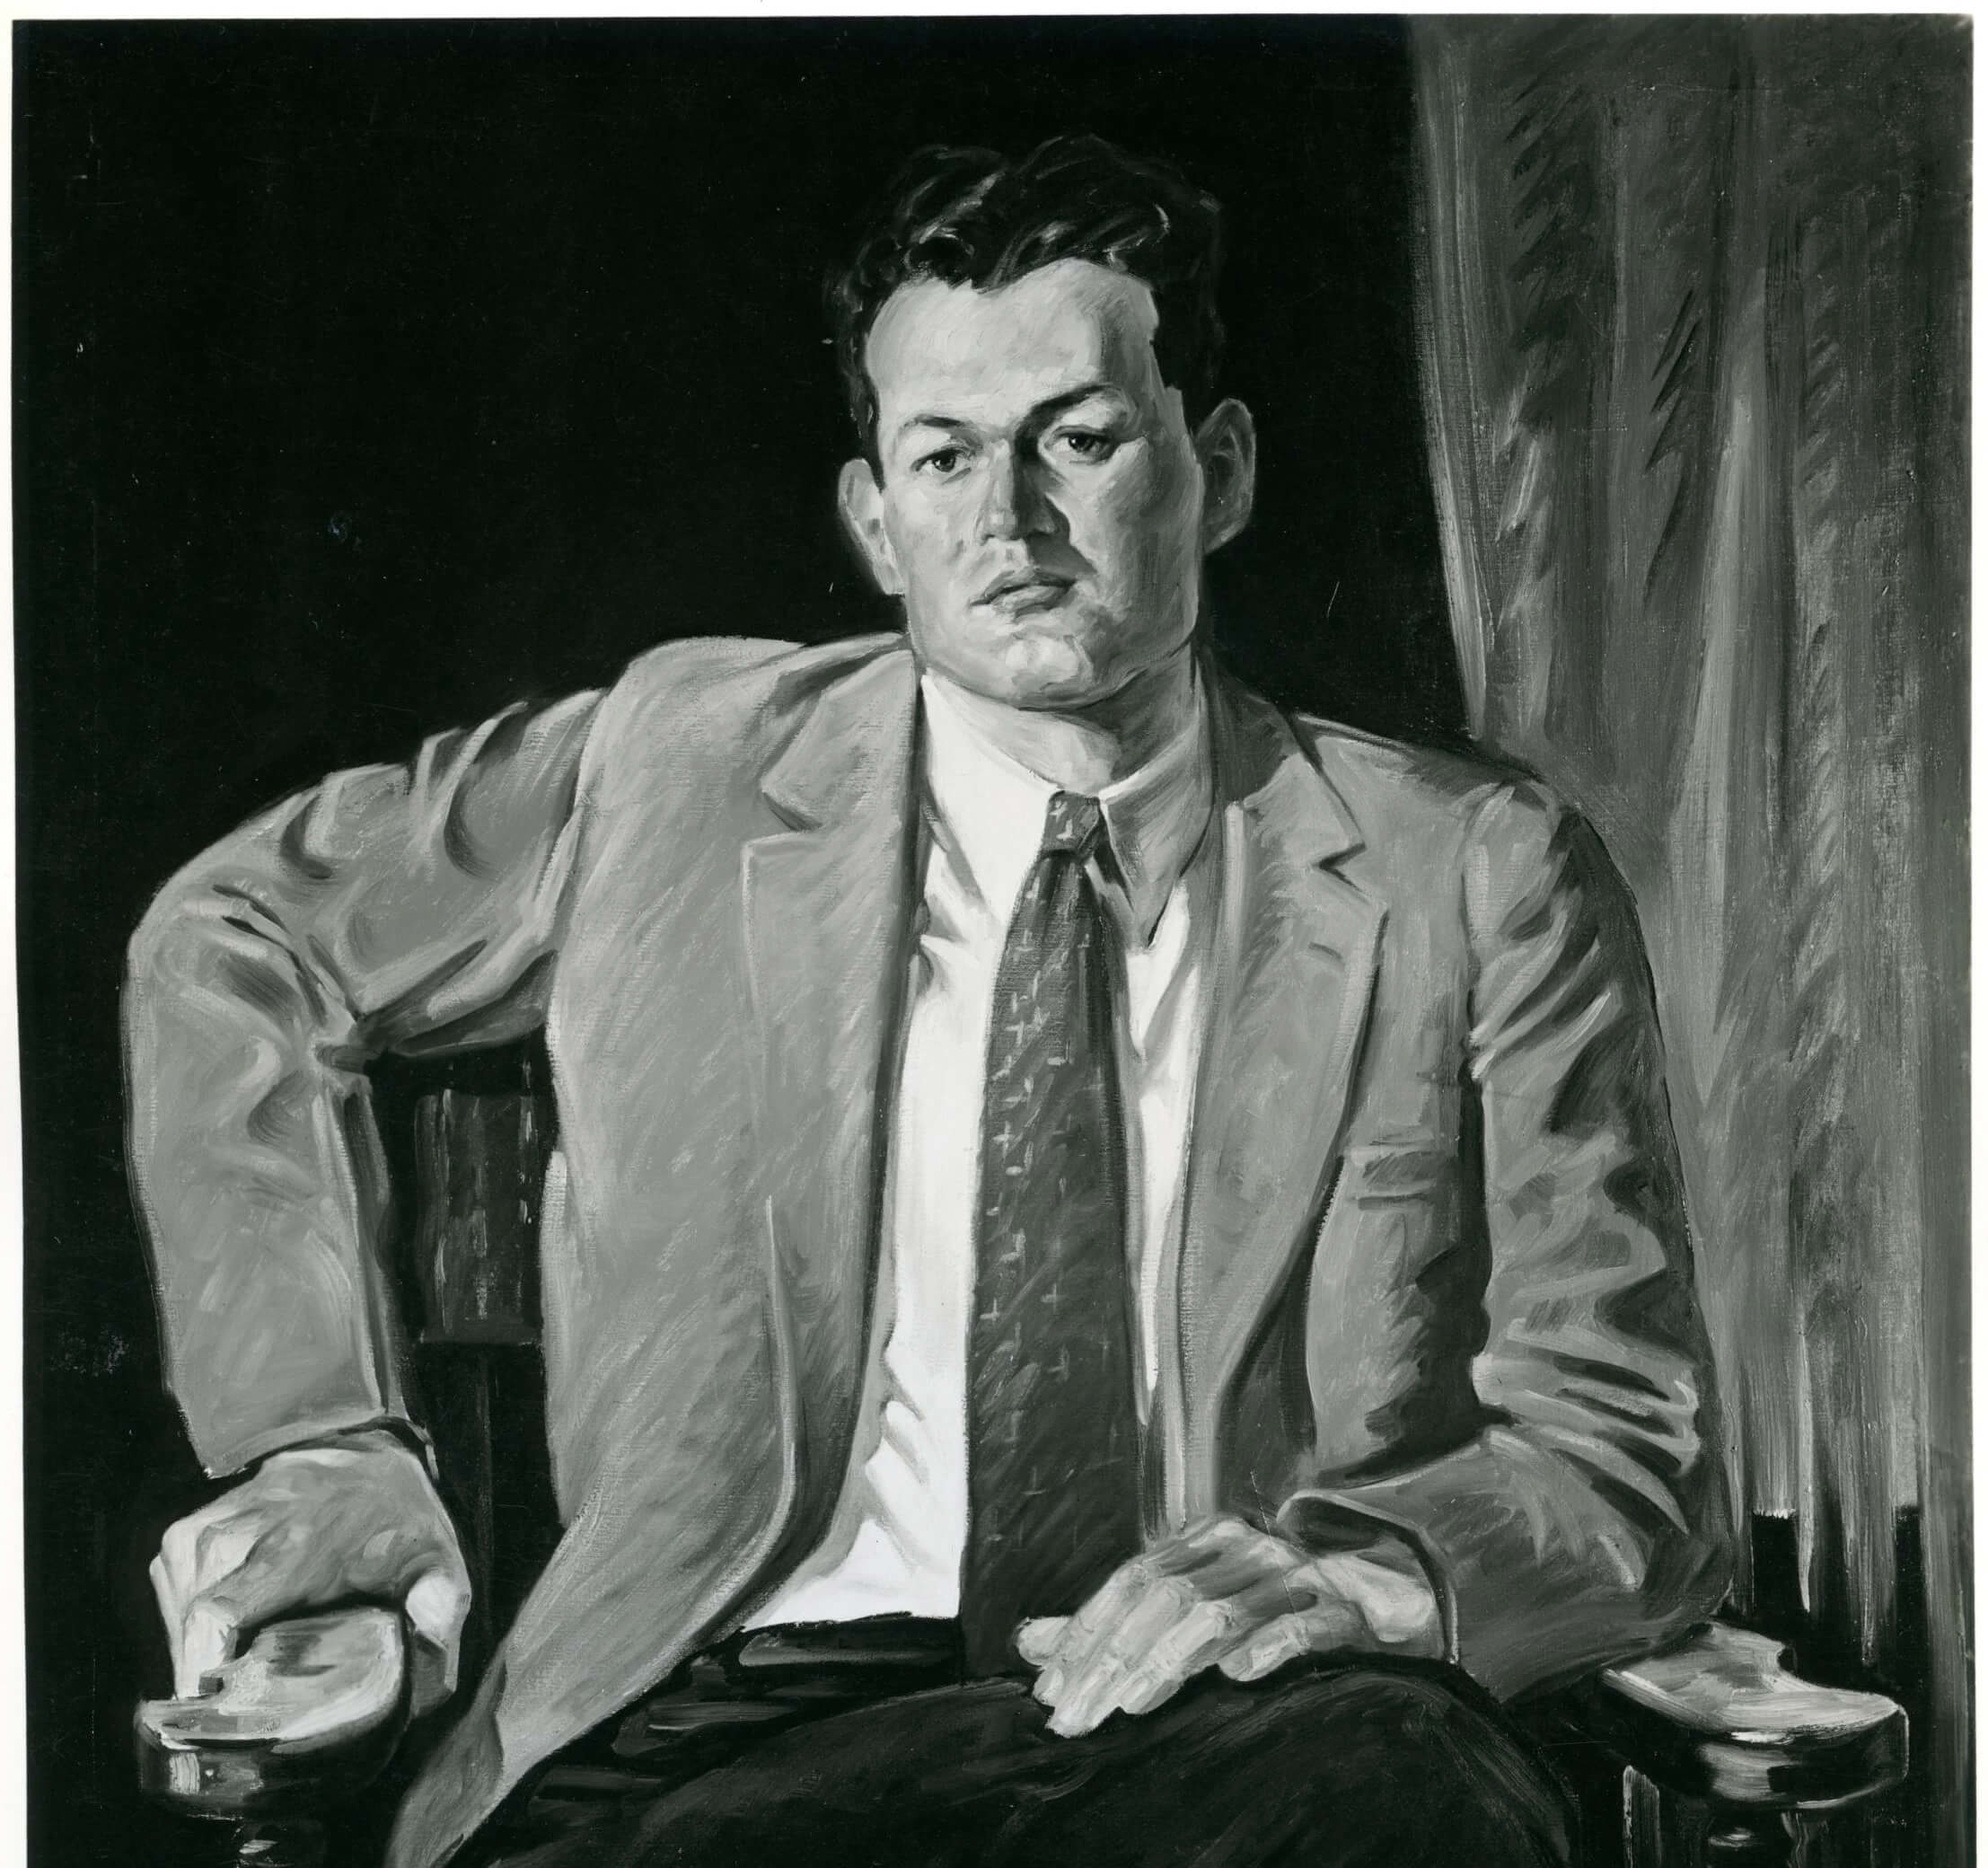 Portrait of a man with his jacket open, wearing a tie, and with one arm bent at a 90 degree angle to the side